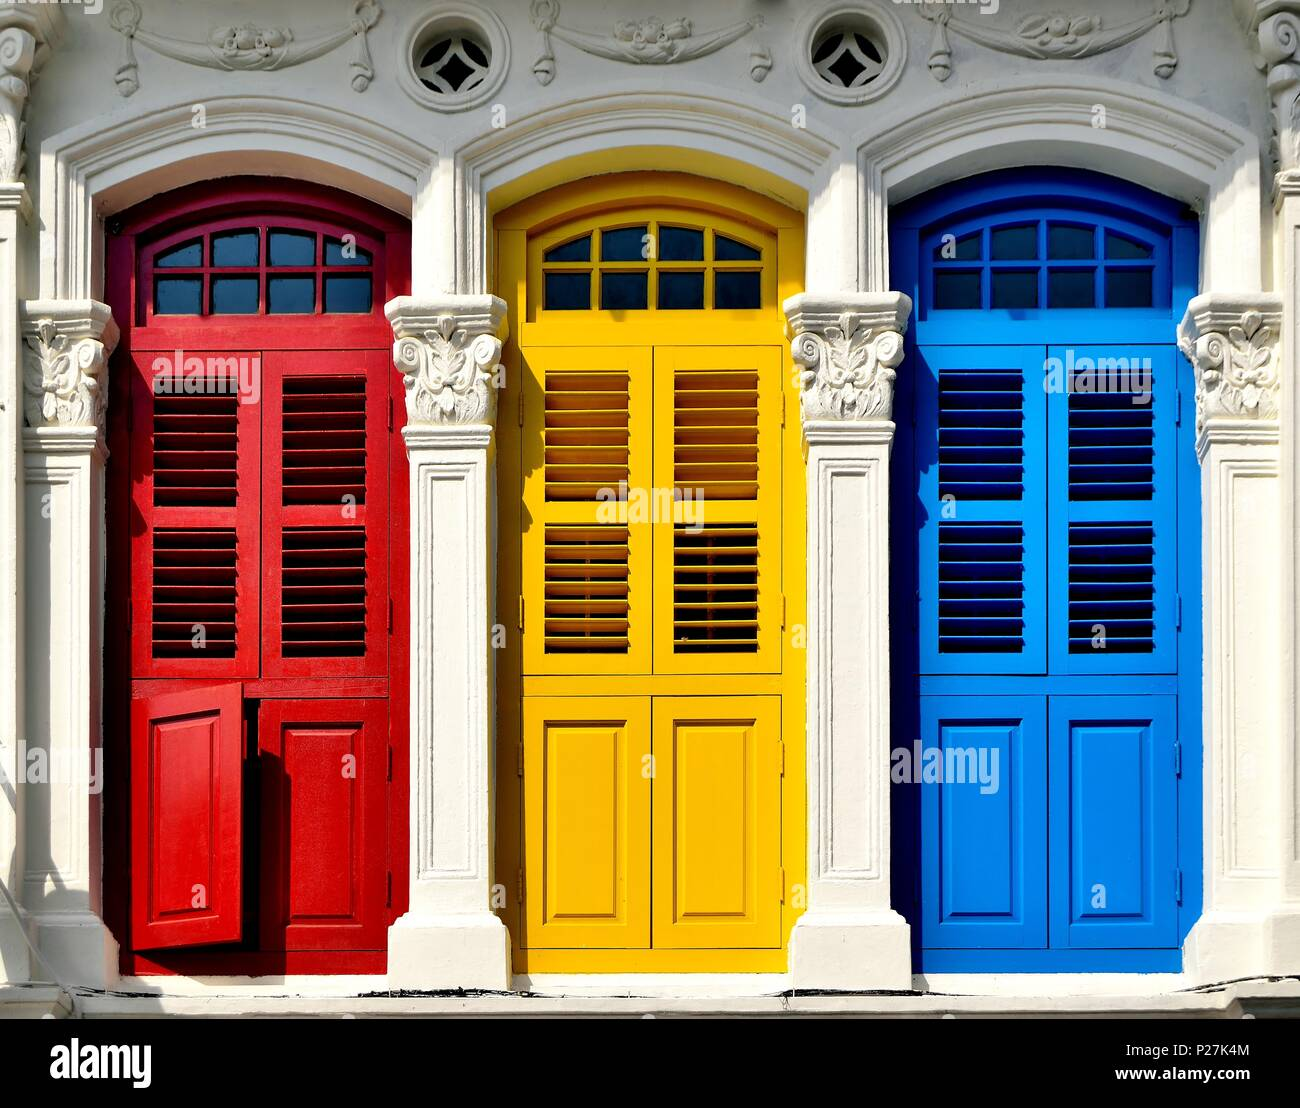 Front view of traditional vintage Singapore shop house or shophouse with antique red, blue and yellow wooden shutters in historic Little India - Stock Image